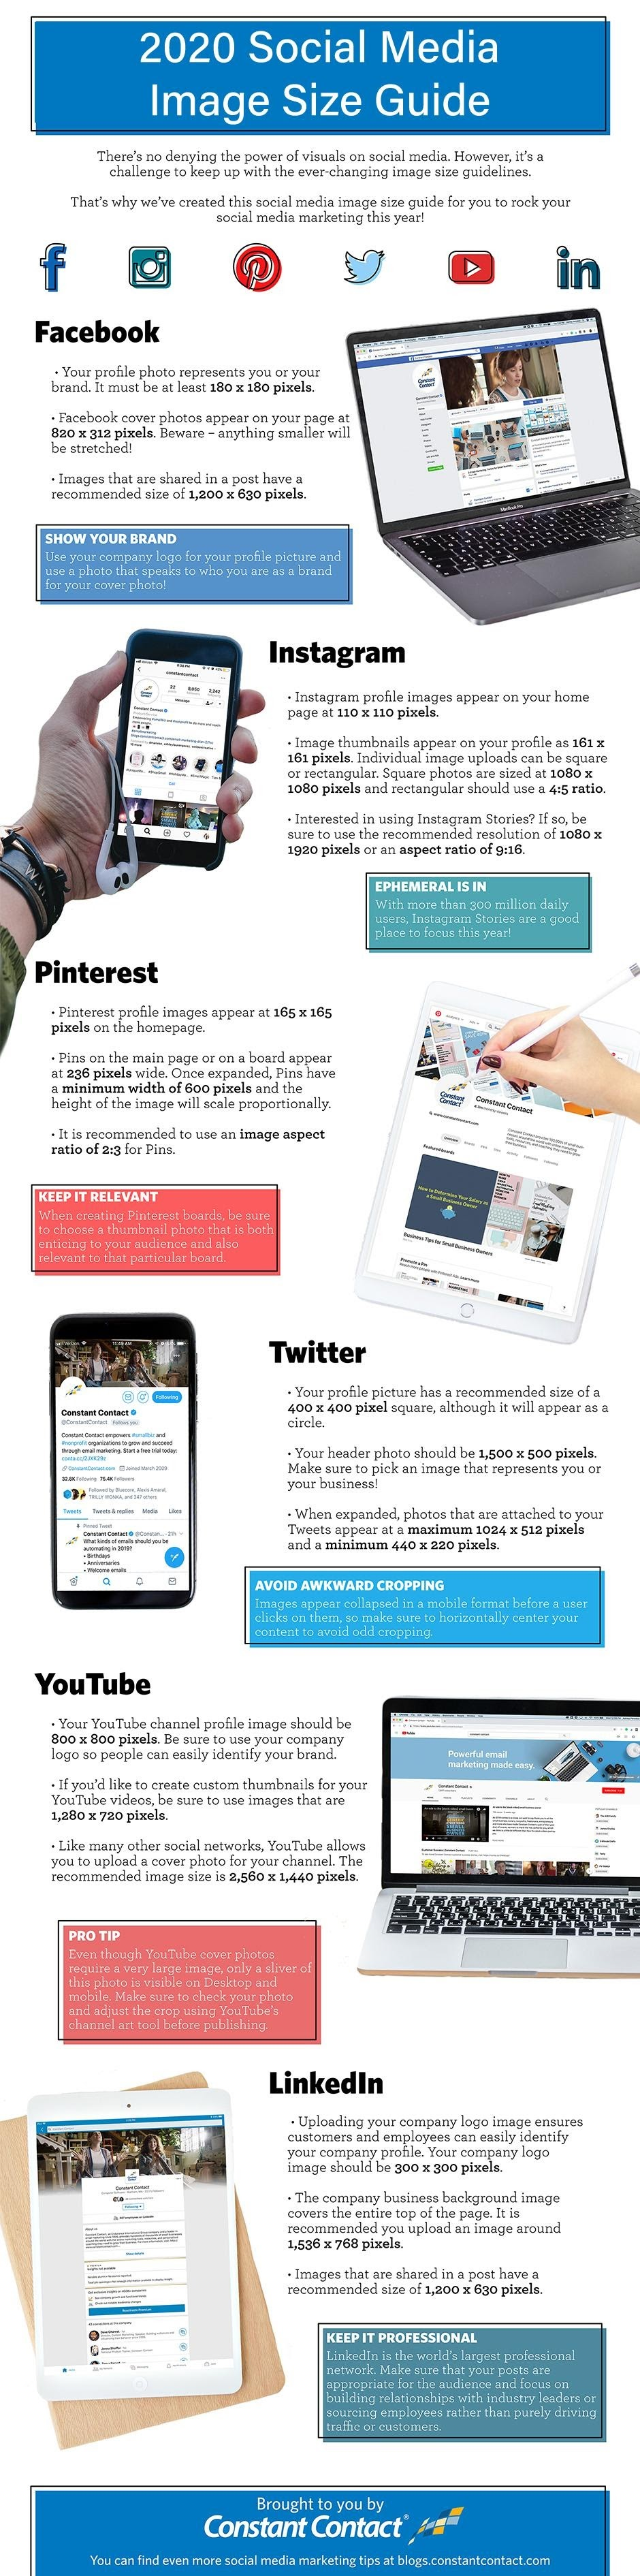 Everything you need to learn about Image sizes in social media # infographic